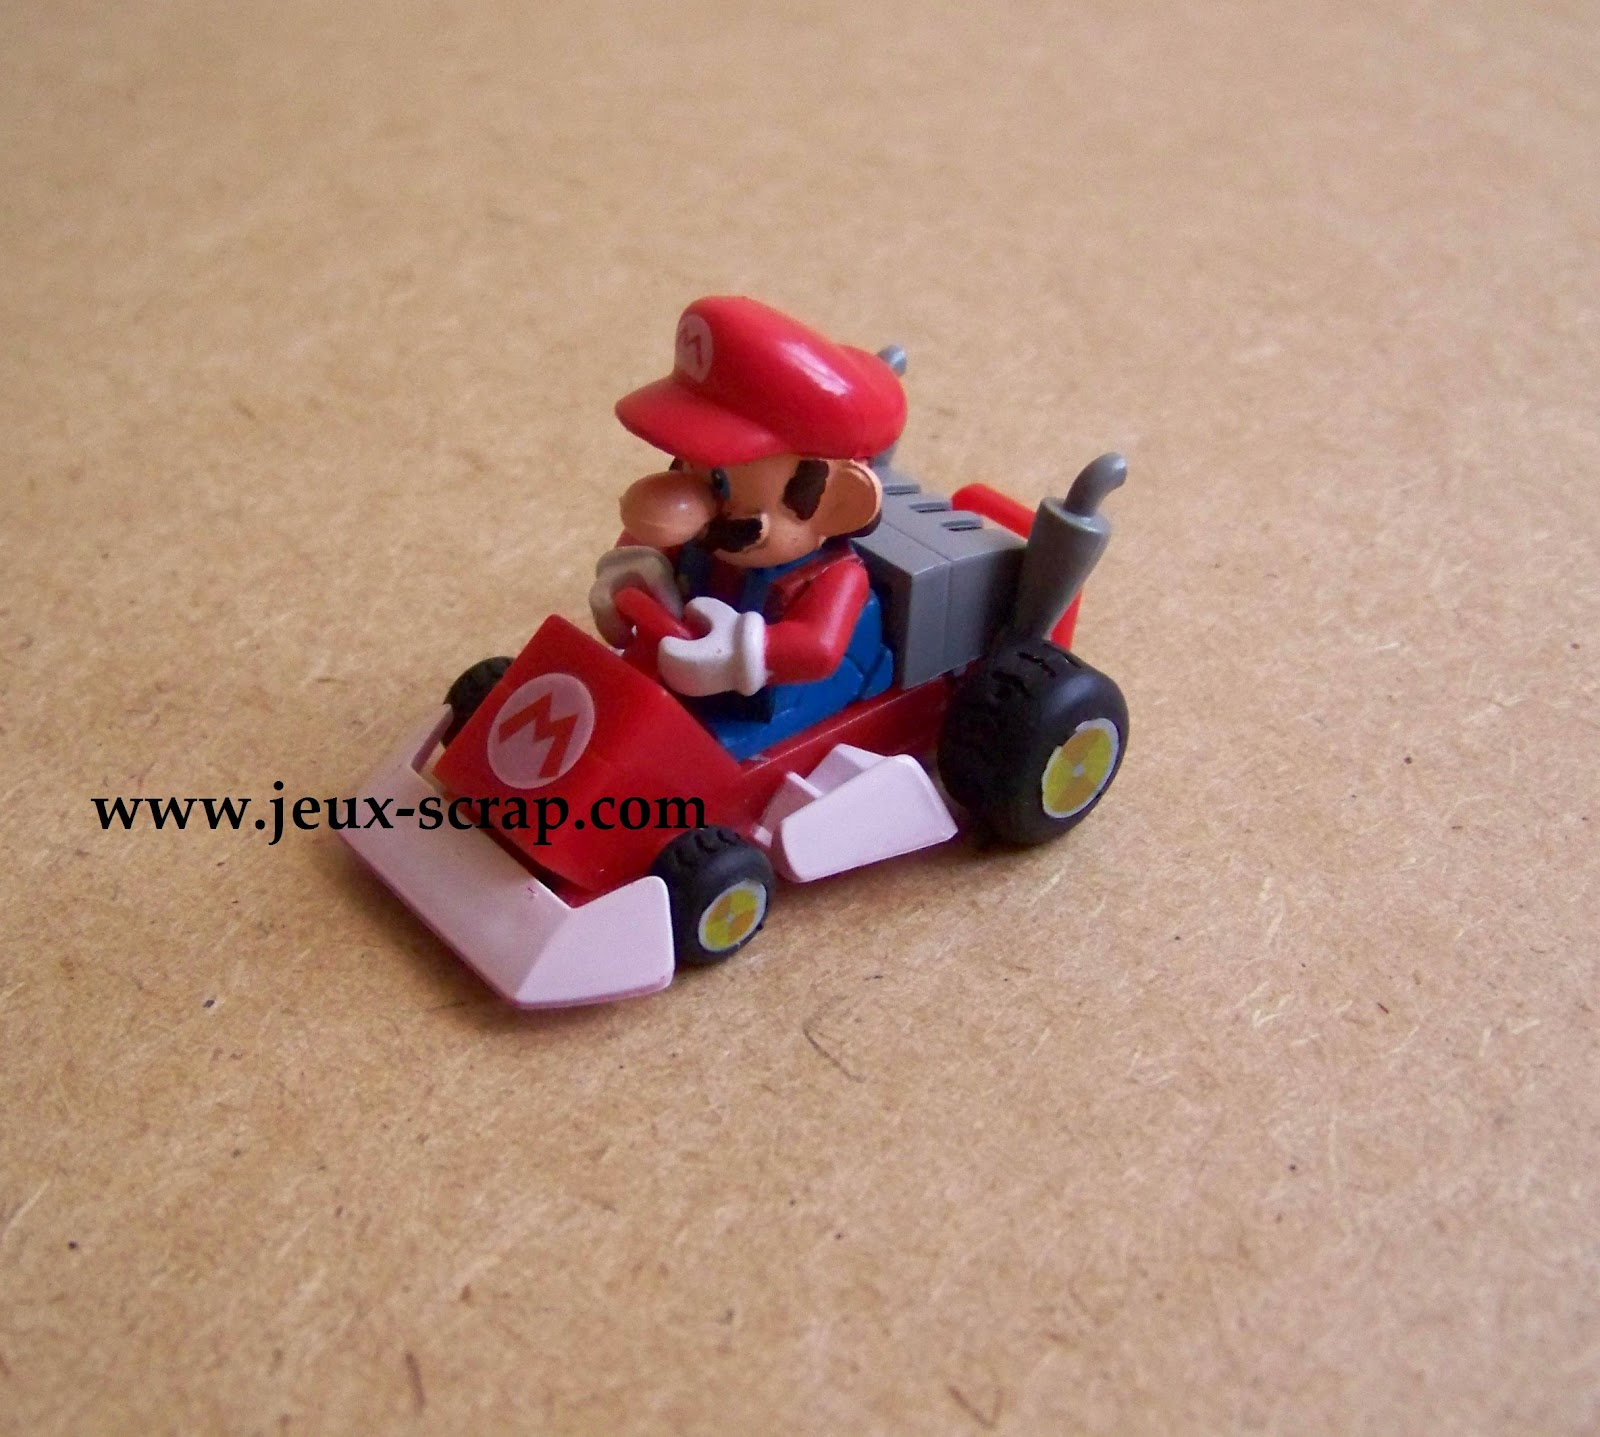 blog boutique jouets jeux scrap mario kart. Black Bedroom Furniture Sets. Home Design Ideas